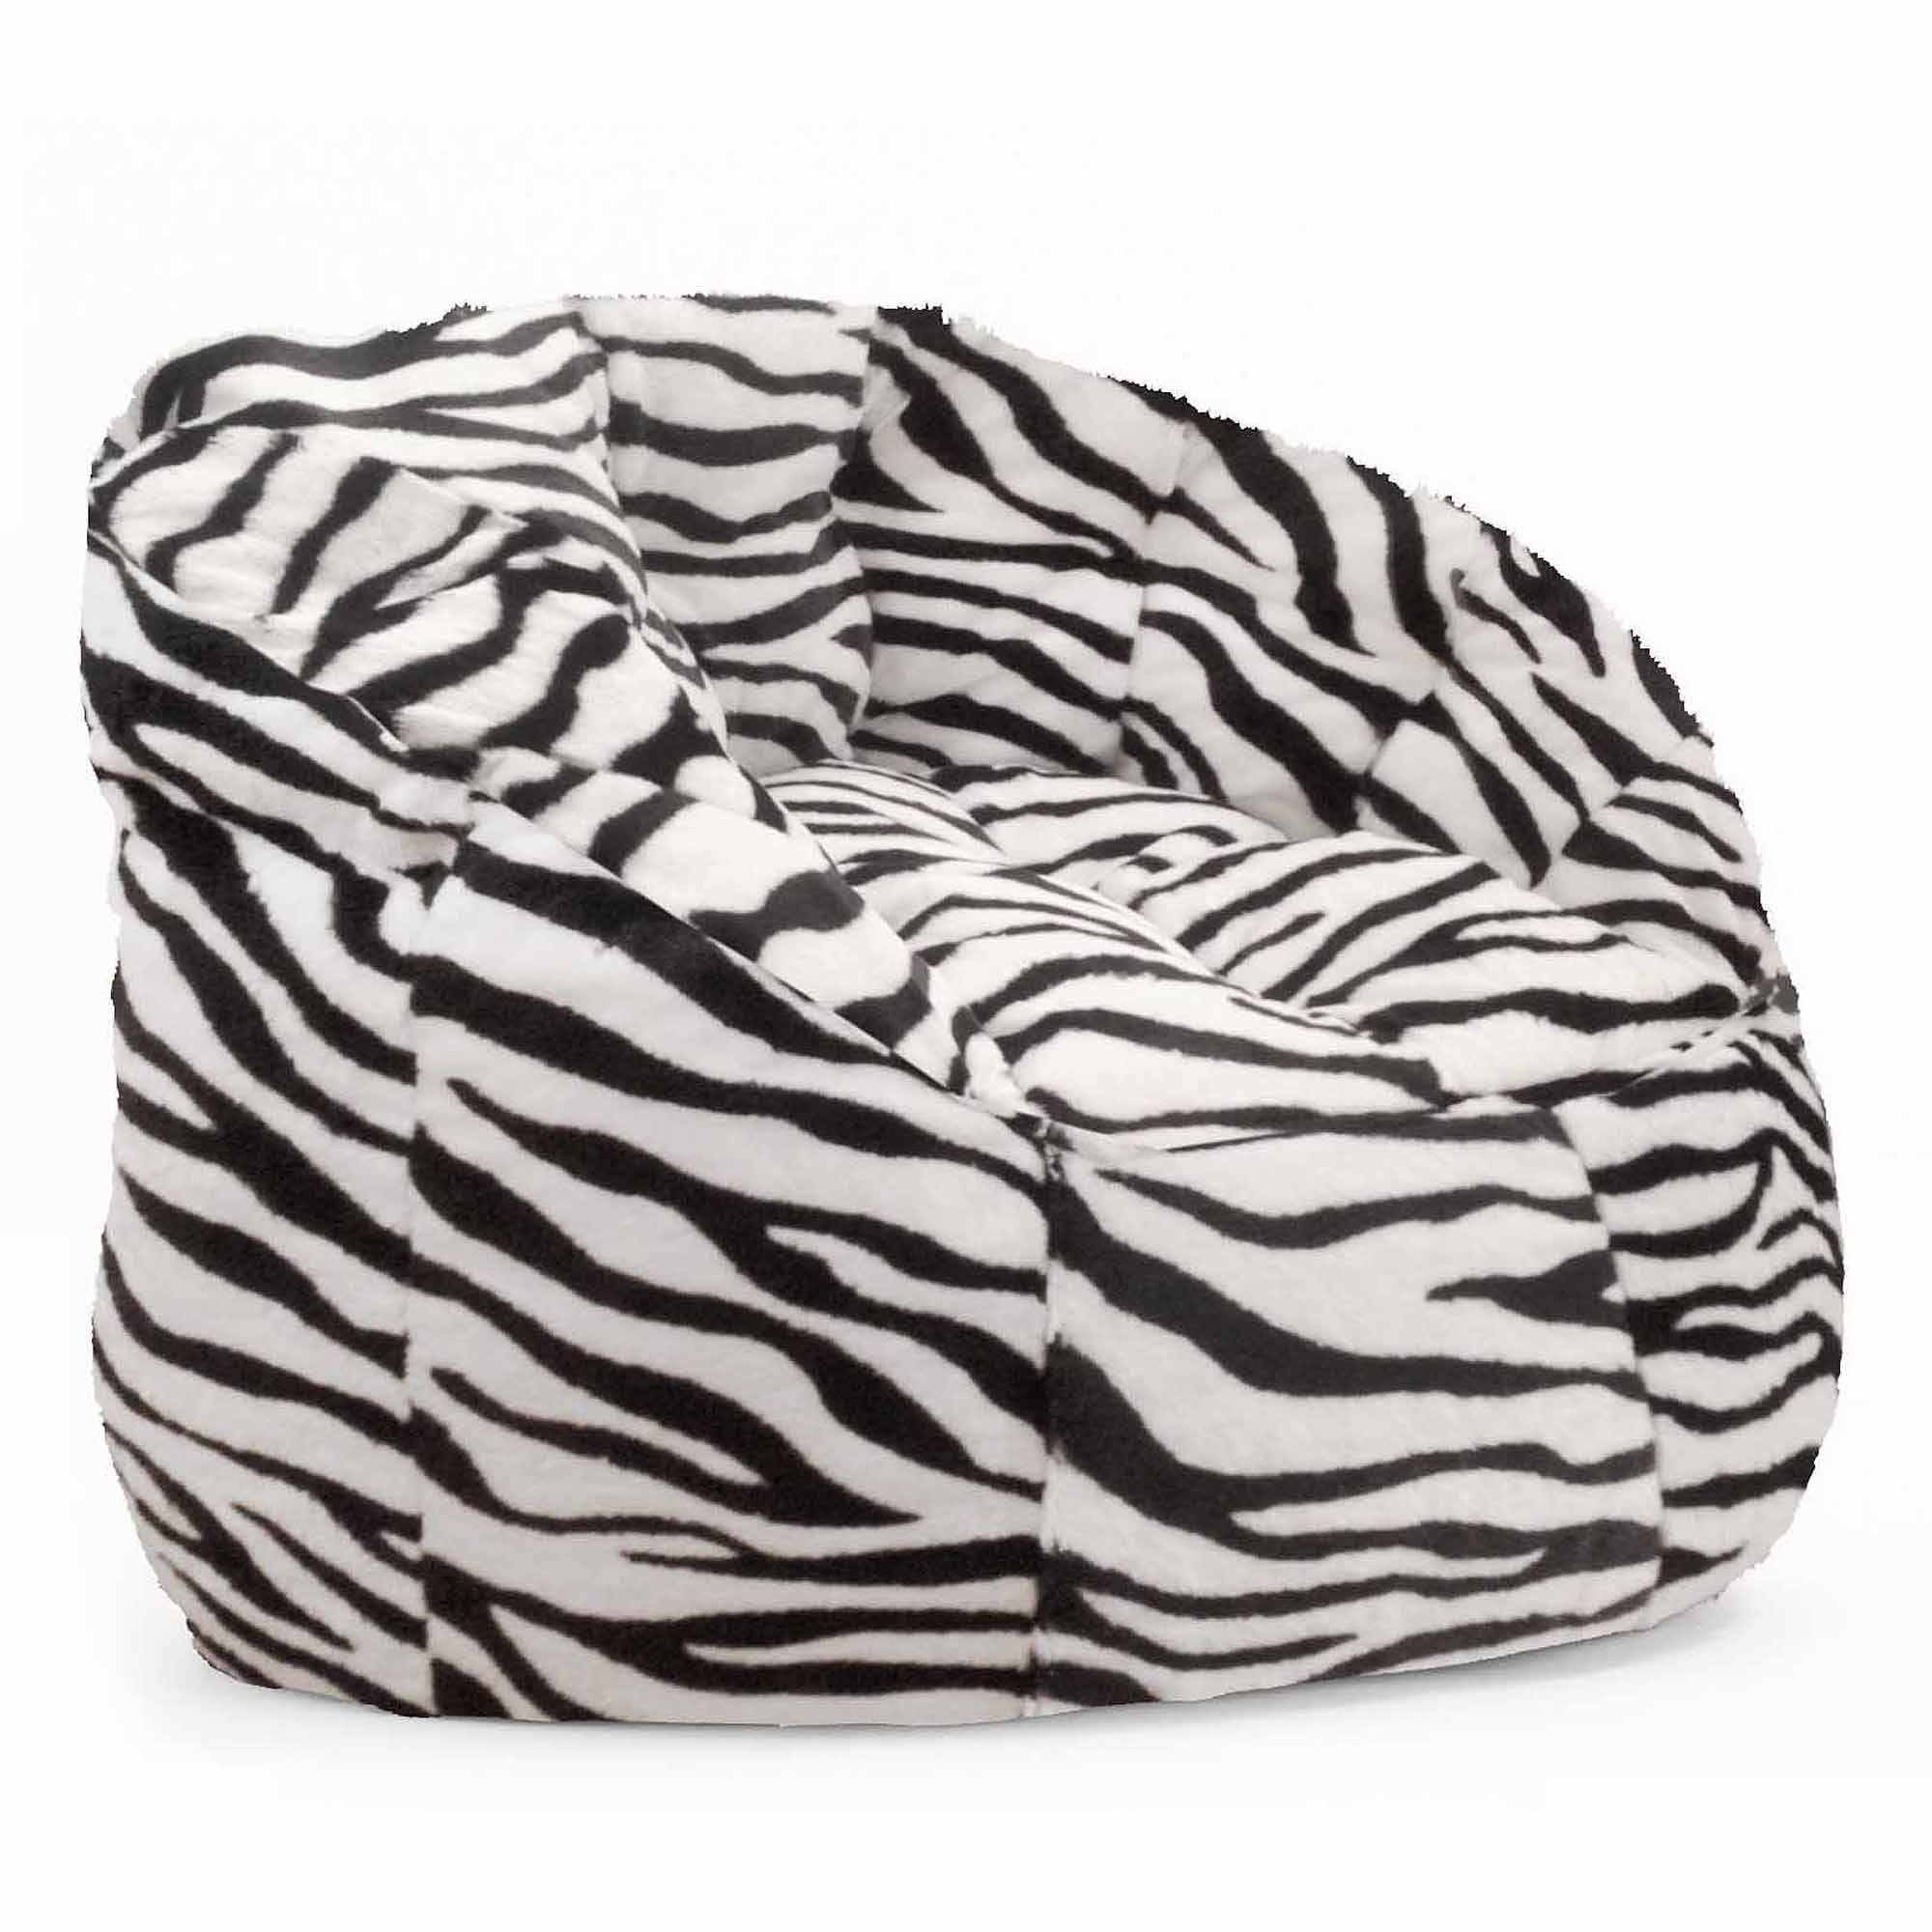 Cocoon Faux Fur Bean Bag Chair Multiple Colors Walmart